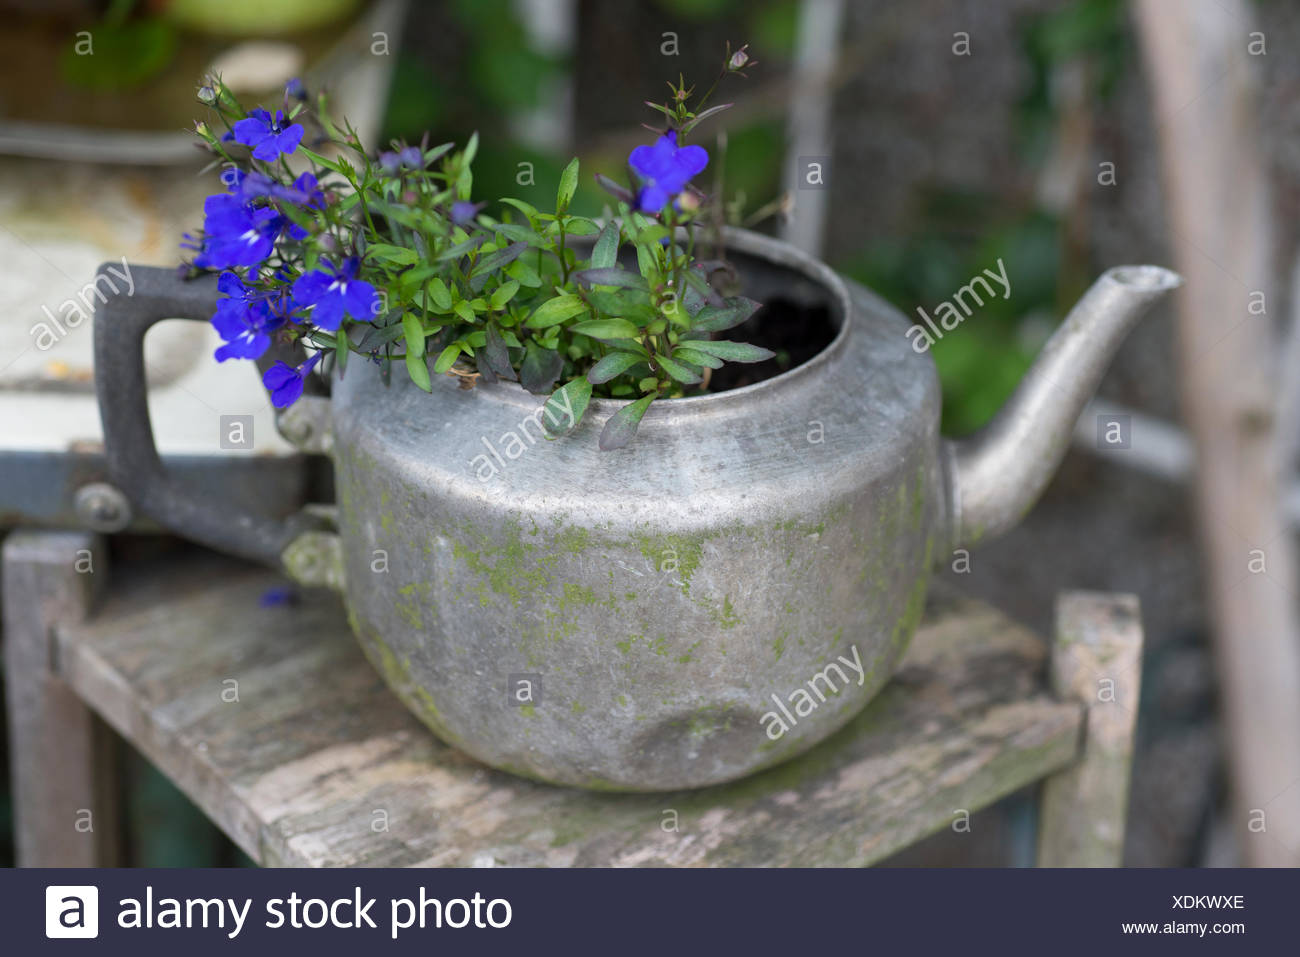 flowering teapot purple flowers - Stock Image